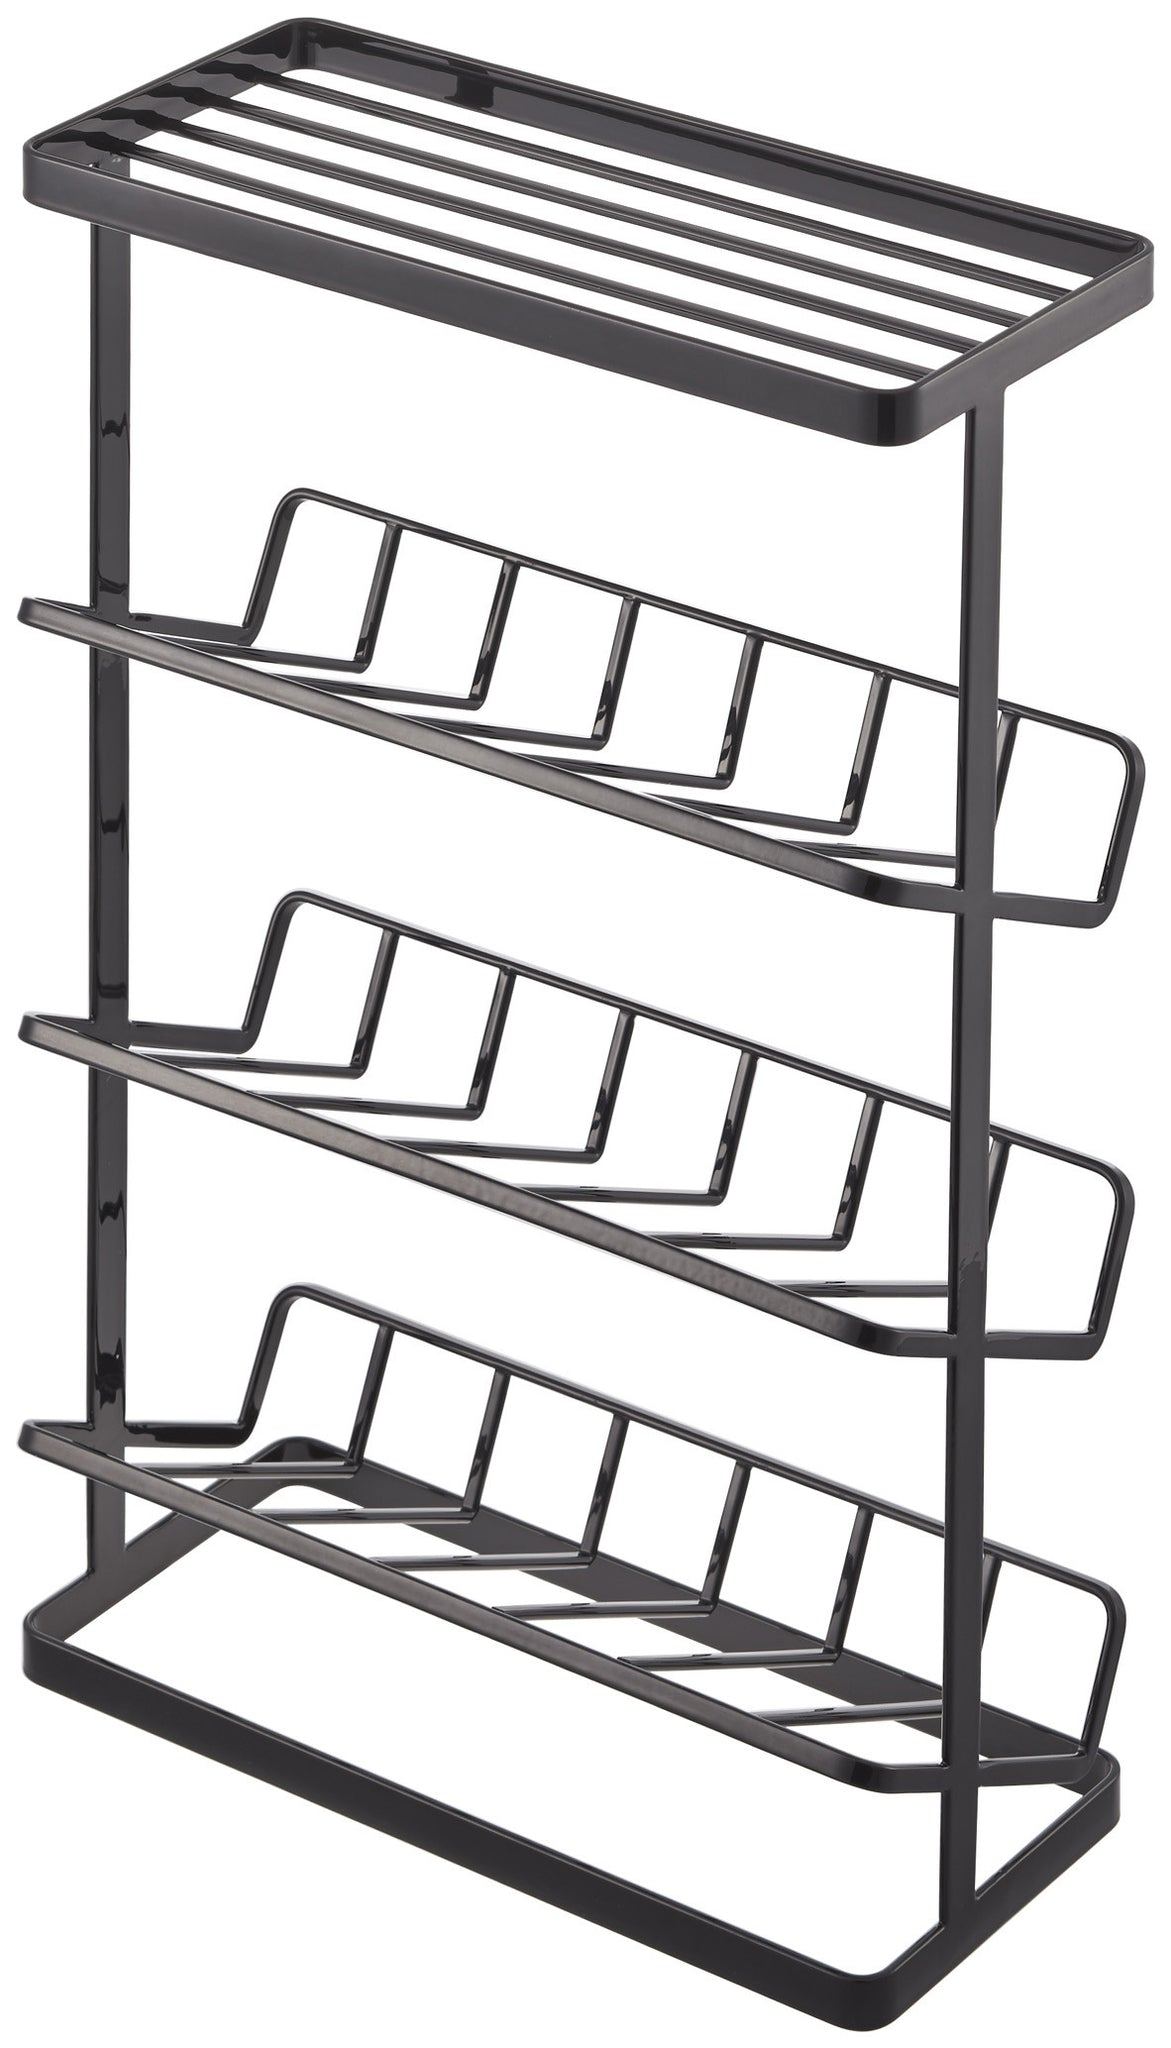 Tower Free Standing Shower Caddy in Various Colors design by ...